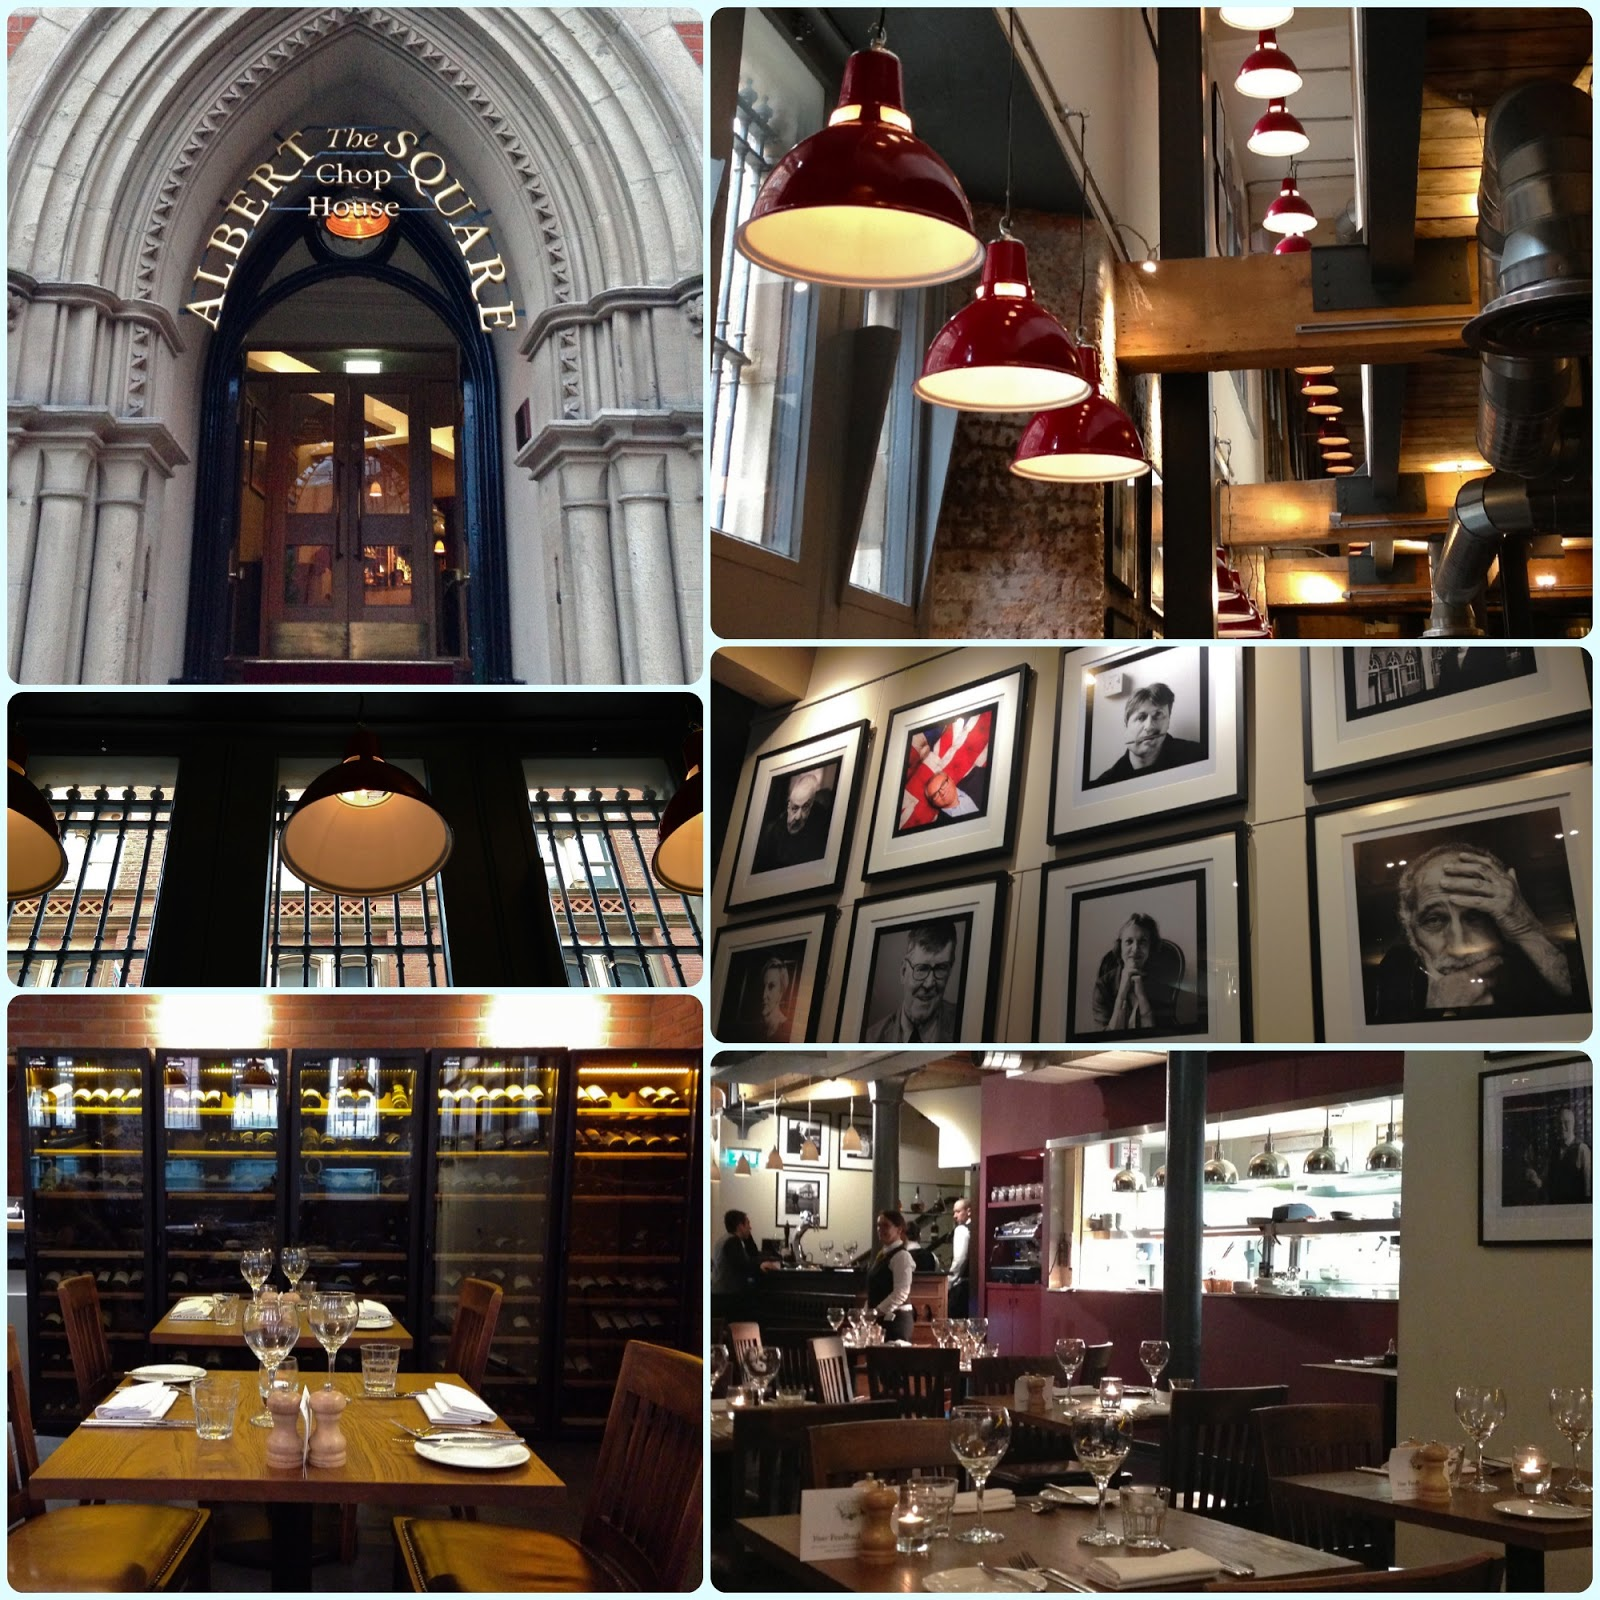 The Albert Square Chop House Manchester  Dollybakes